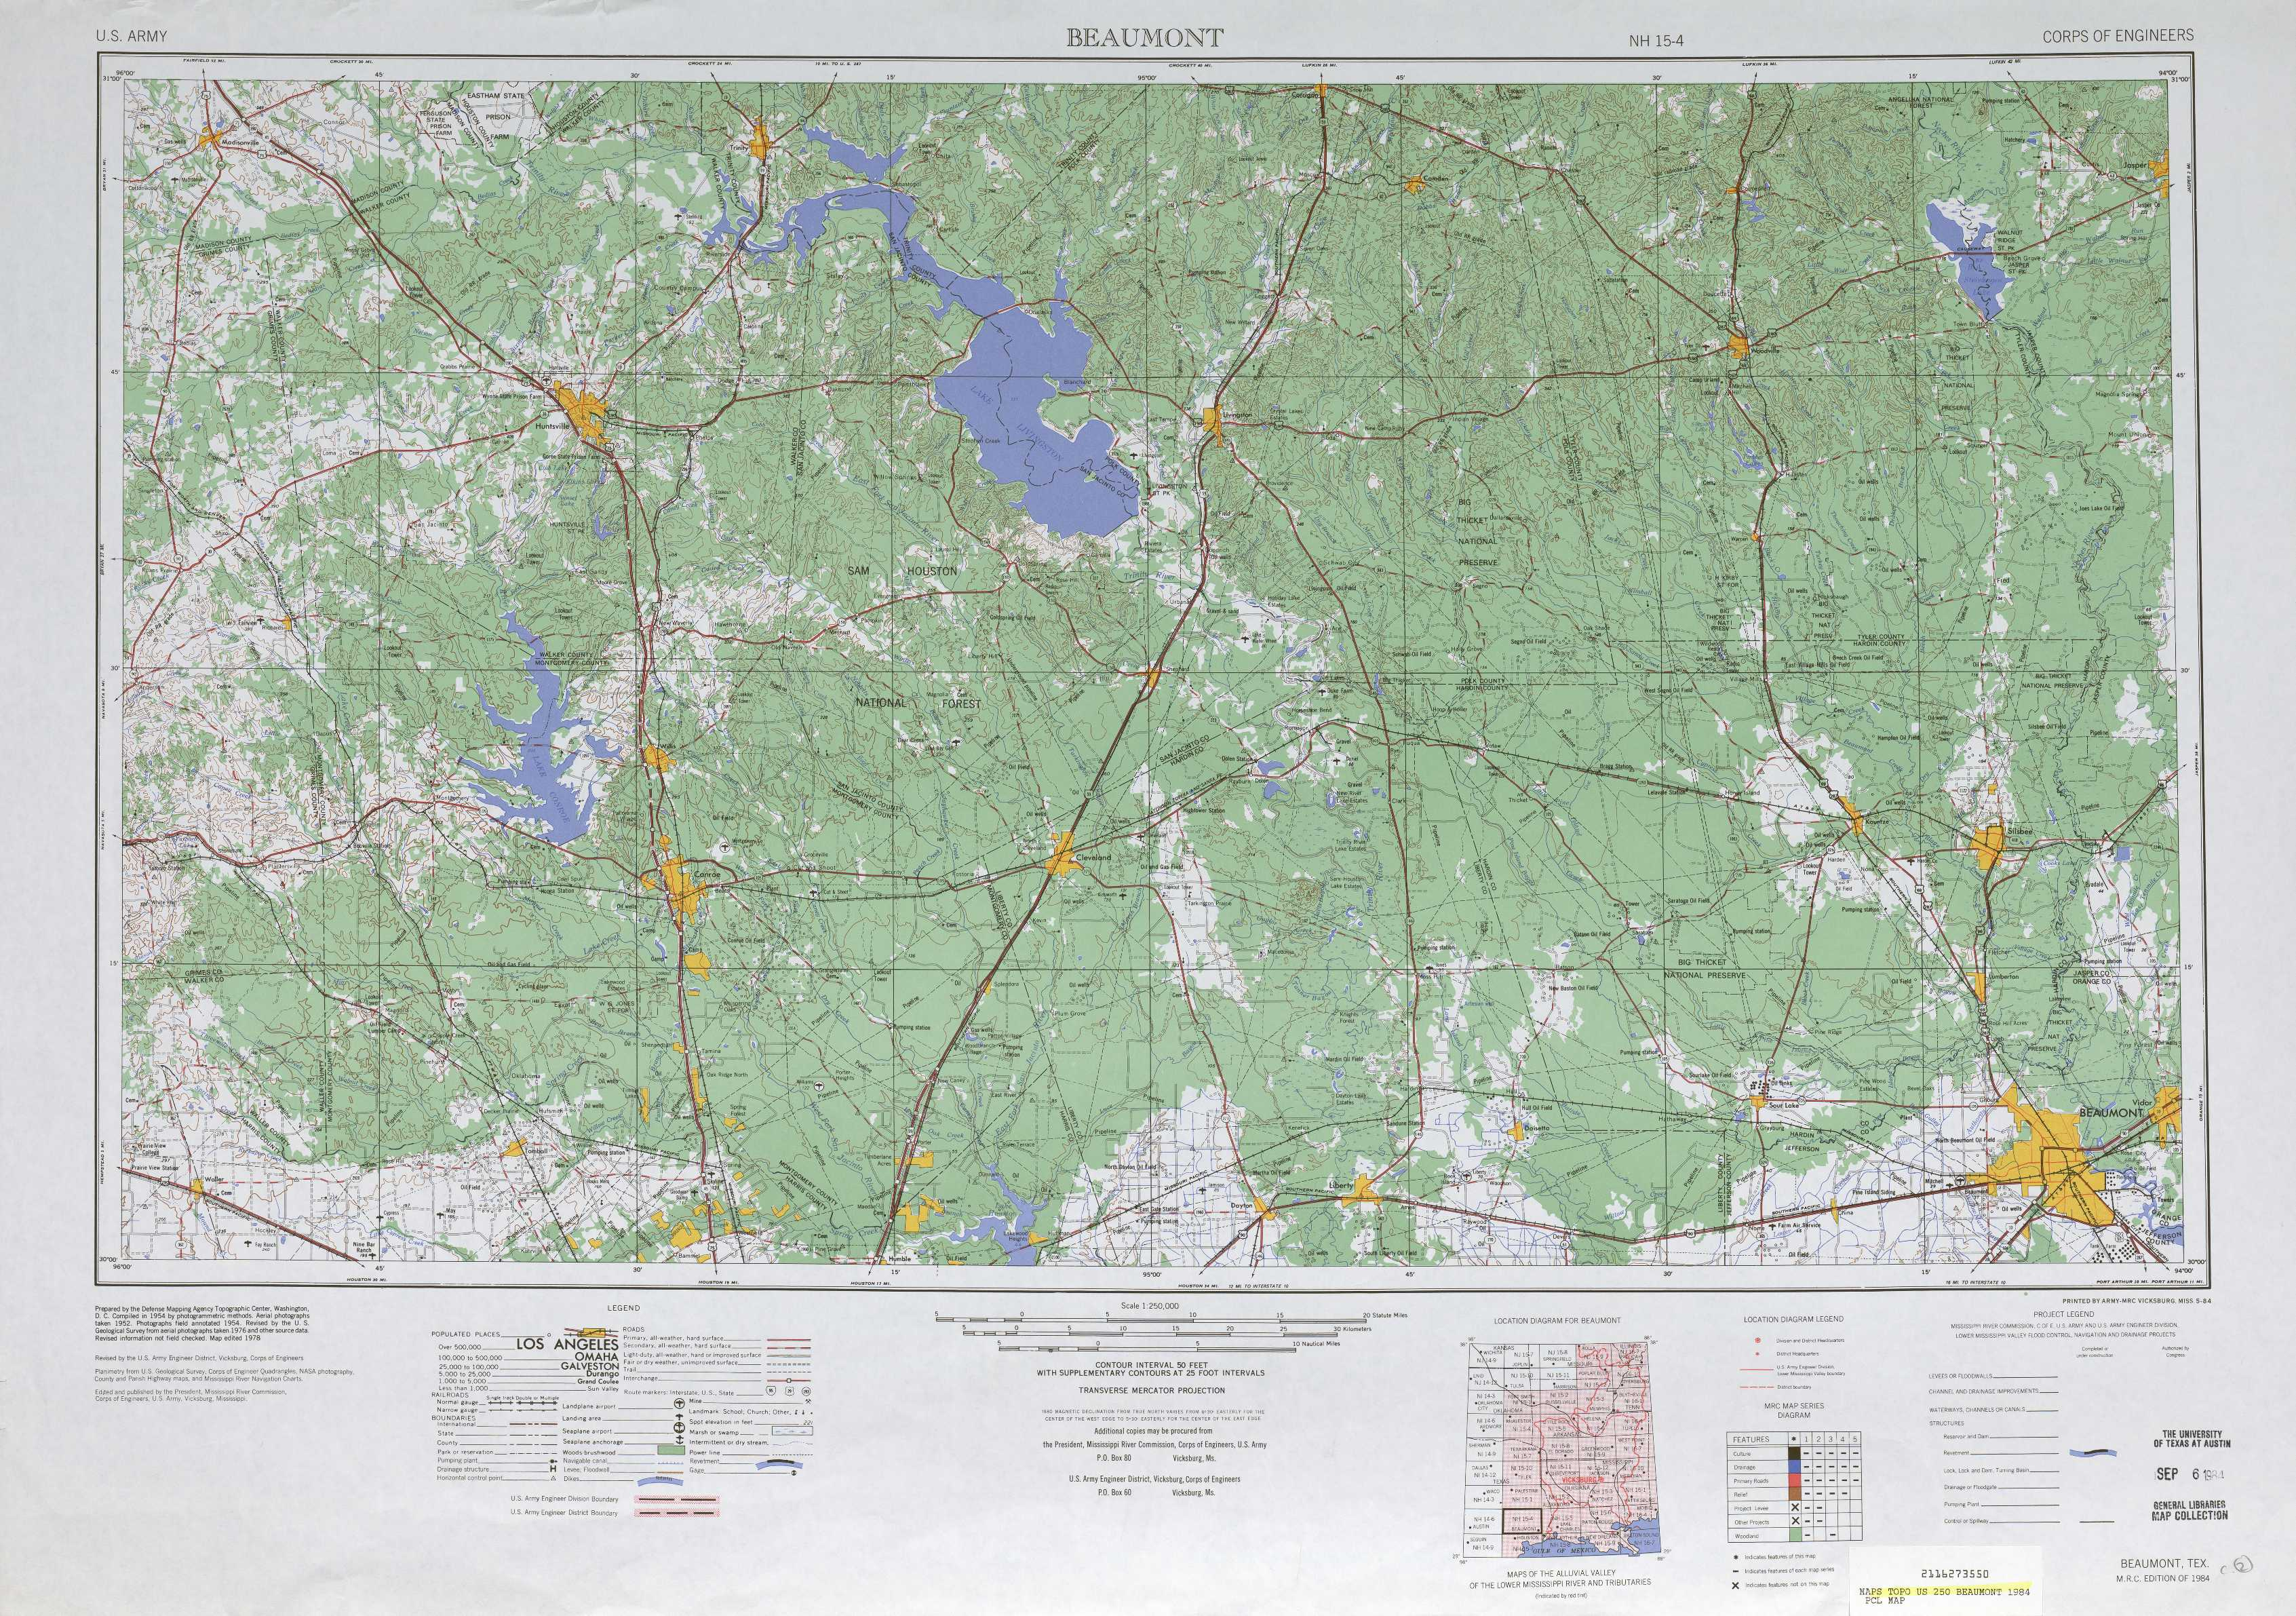 Beaumont topographic maps, TX - USGS Topo Quad 30094a1 at 1:250,000 ...